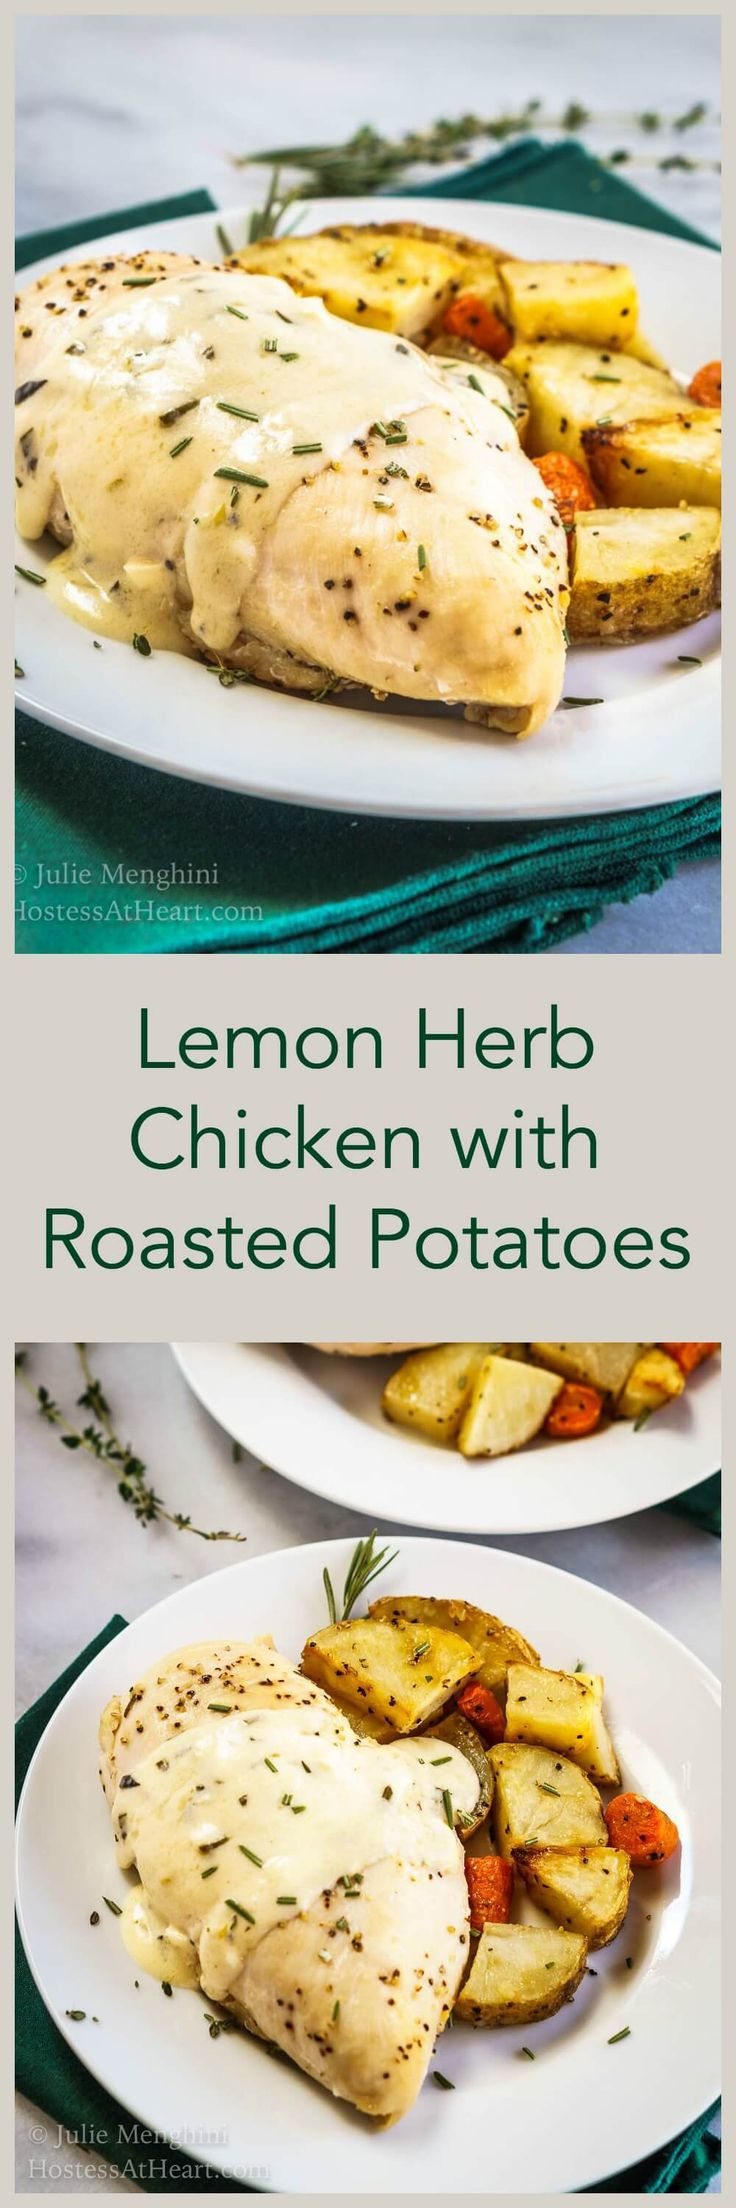 Lemon Herb Chicken with Roasted potatoes is a complete, delicious meal ...